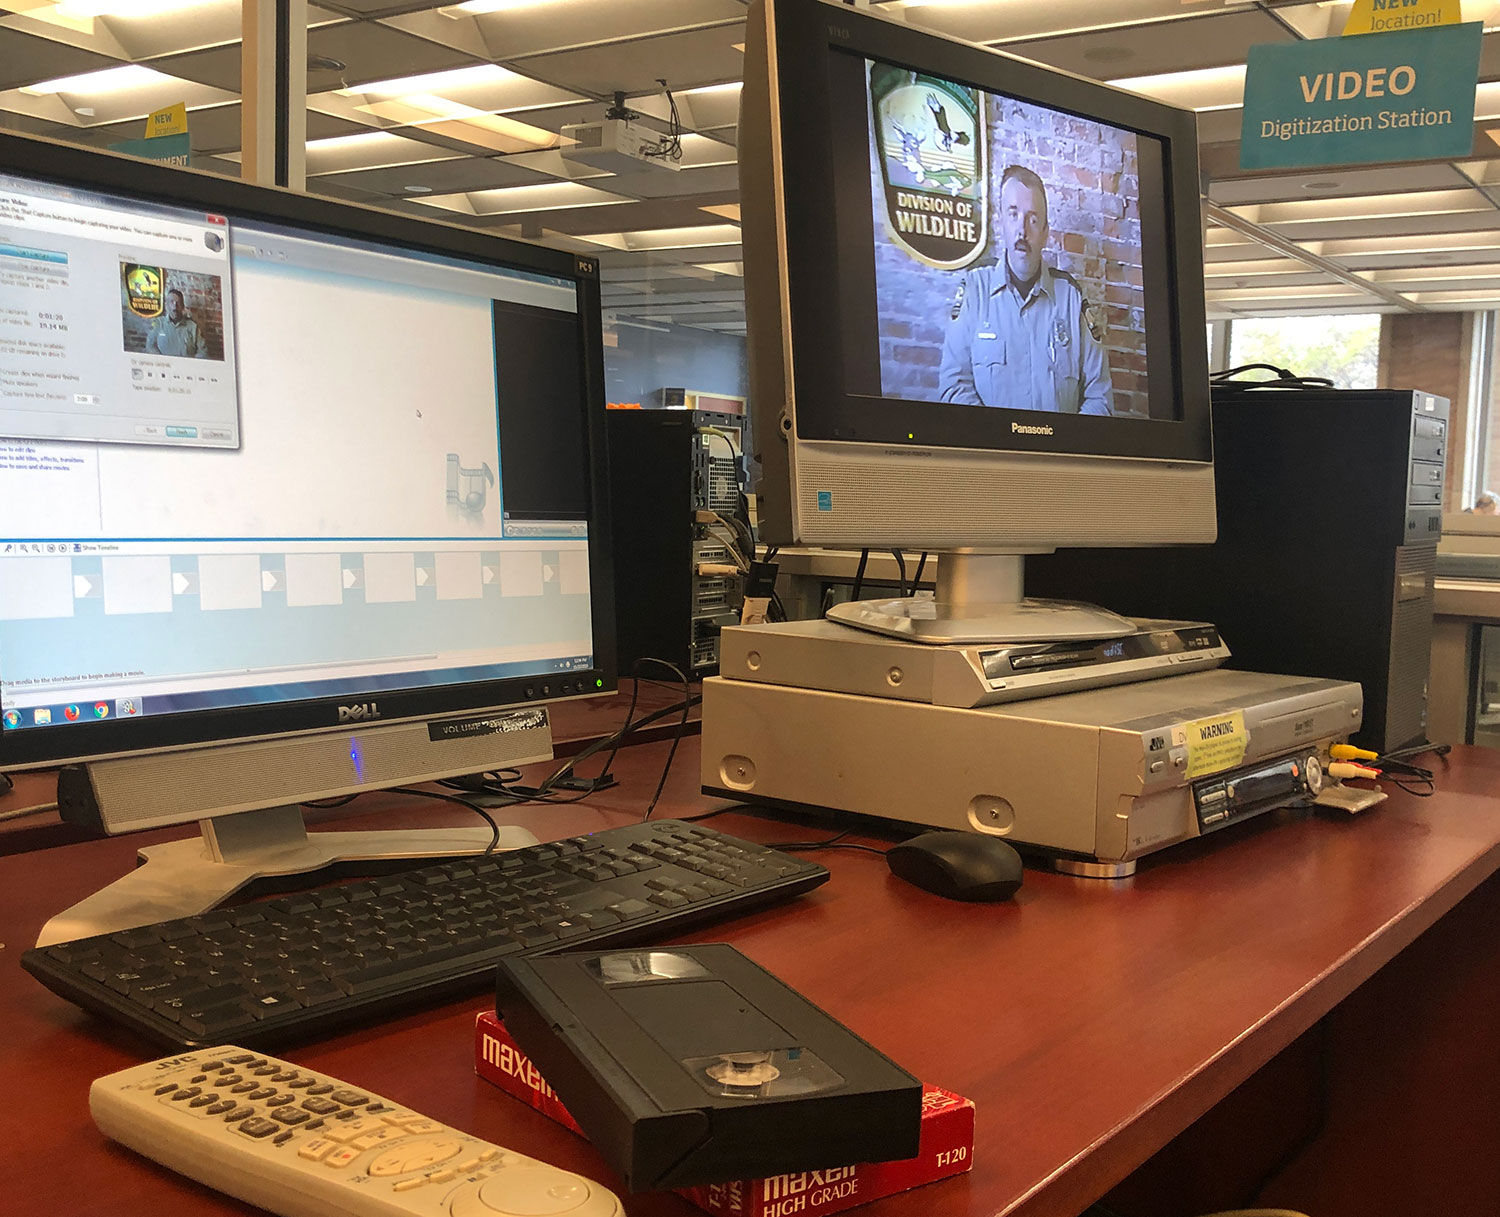 Video digitization station in the Student Multimedia Studio